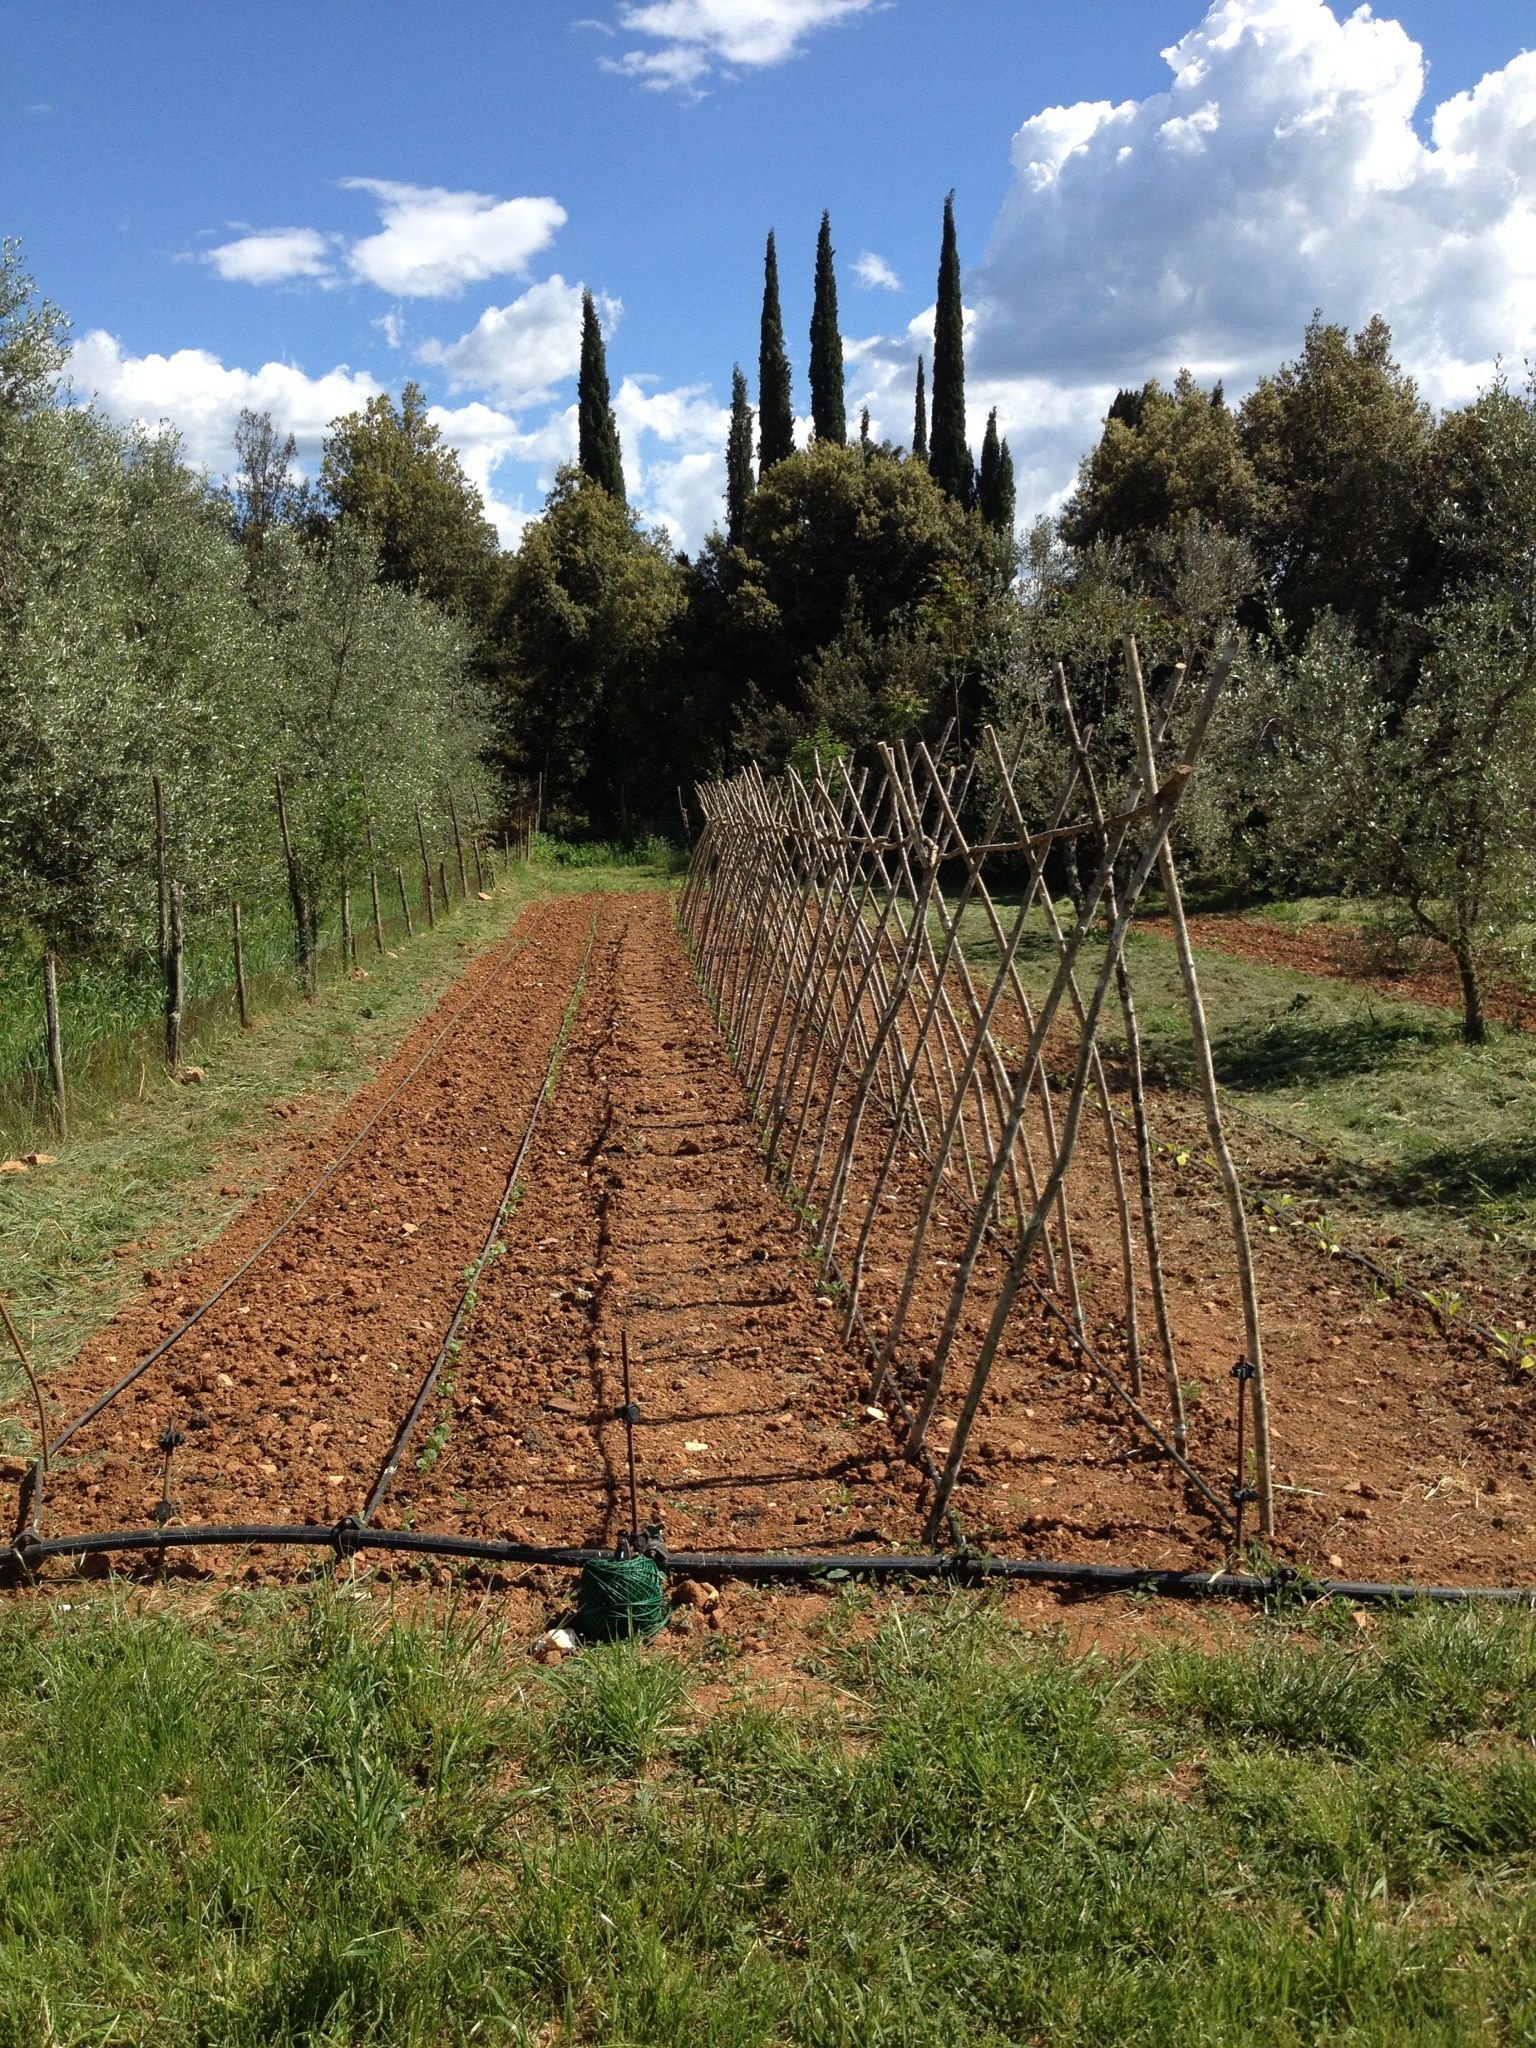 Bean and asparagus plots at Spannocchia